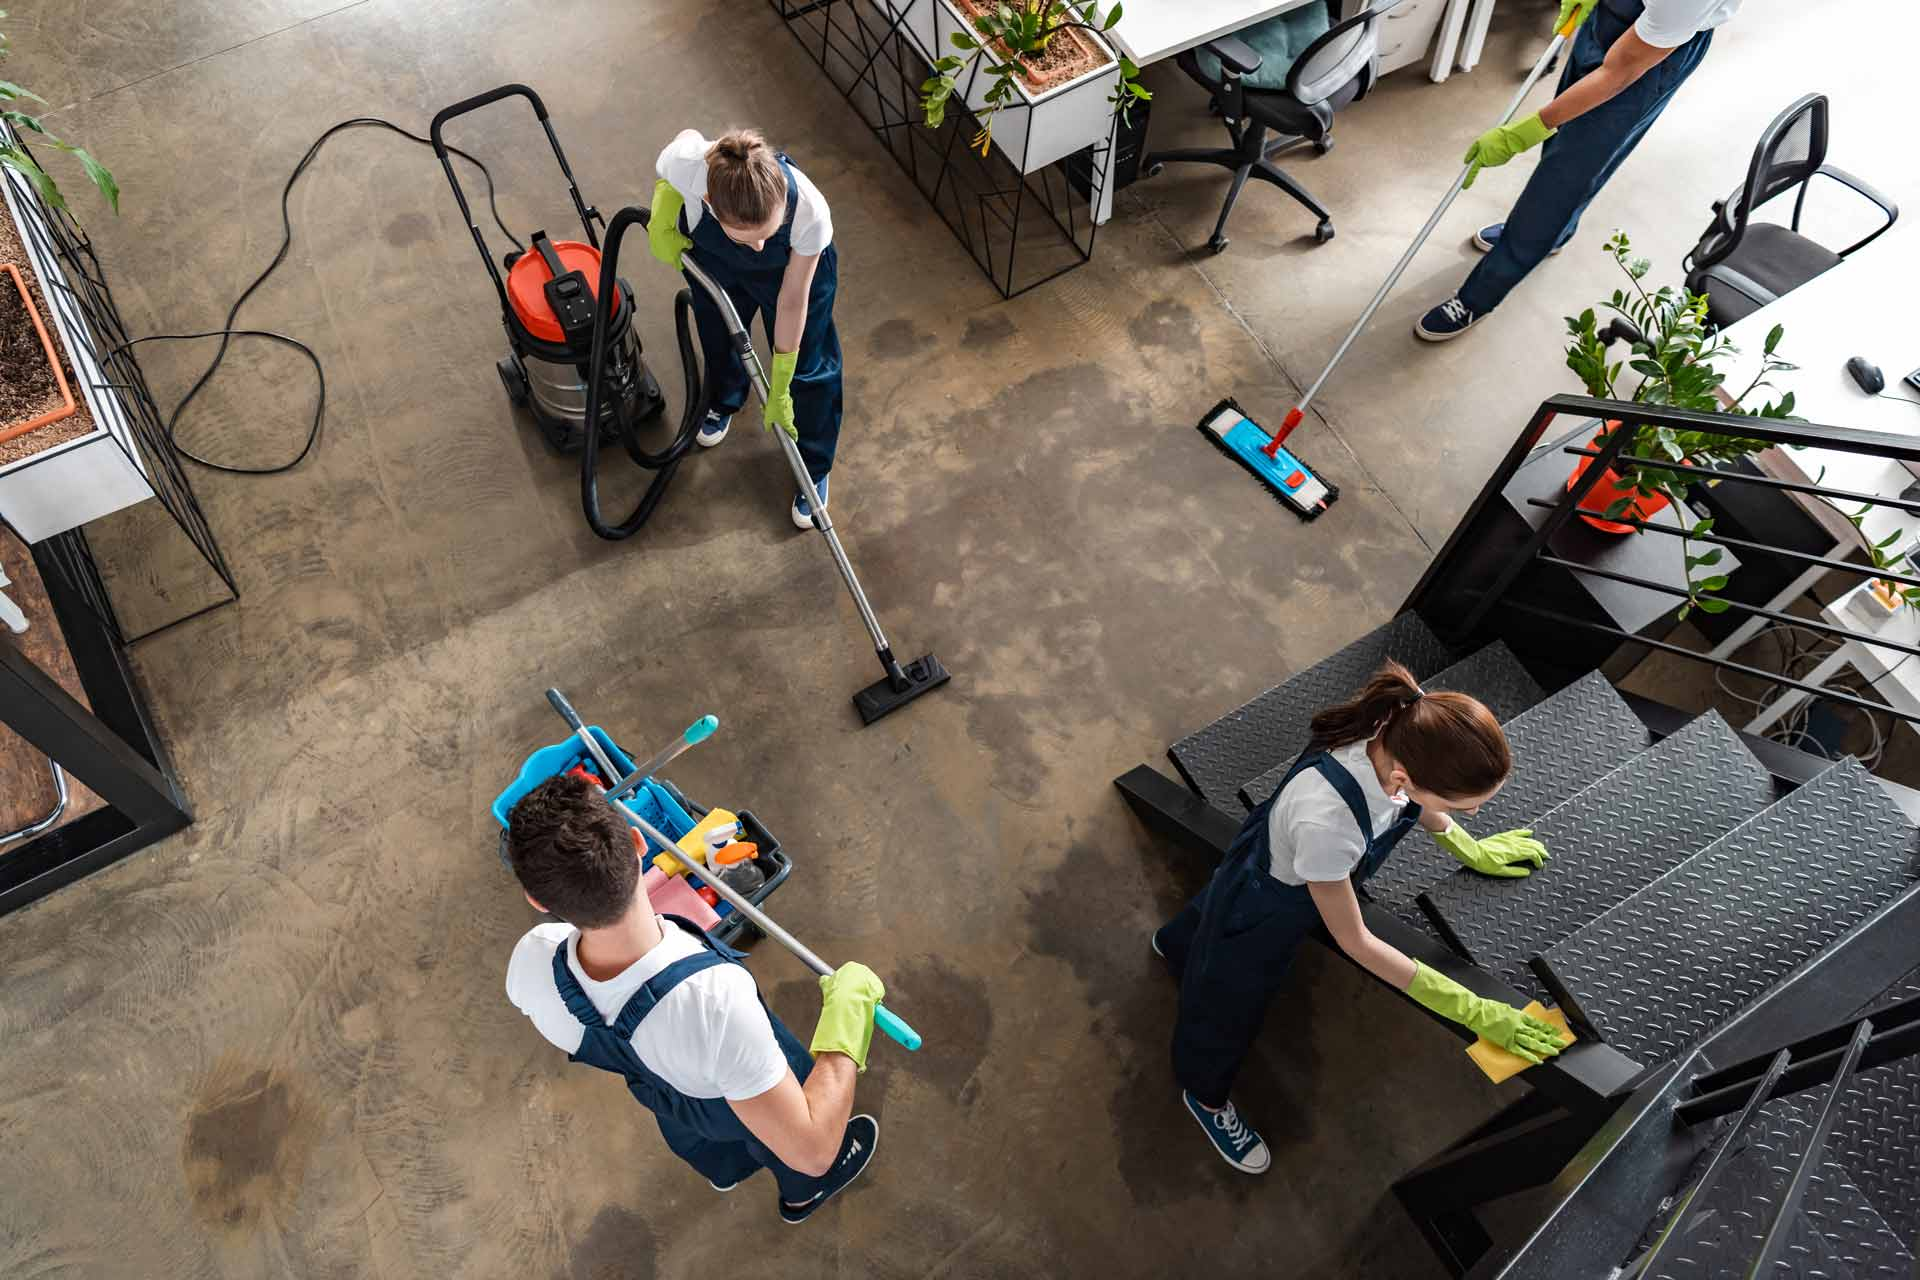 How Do You Promote General Cleanliness In The Workplace?